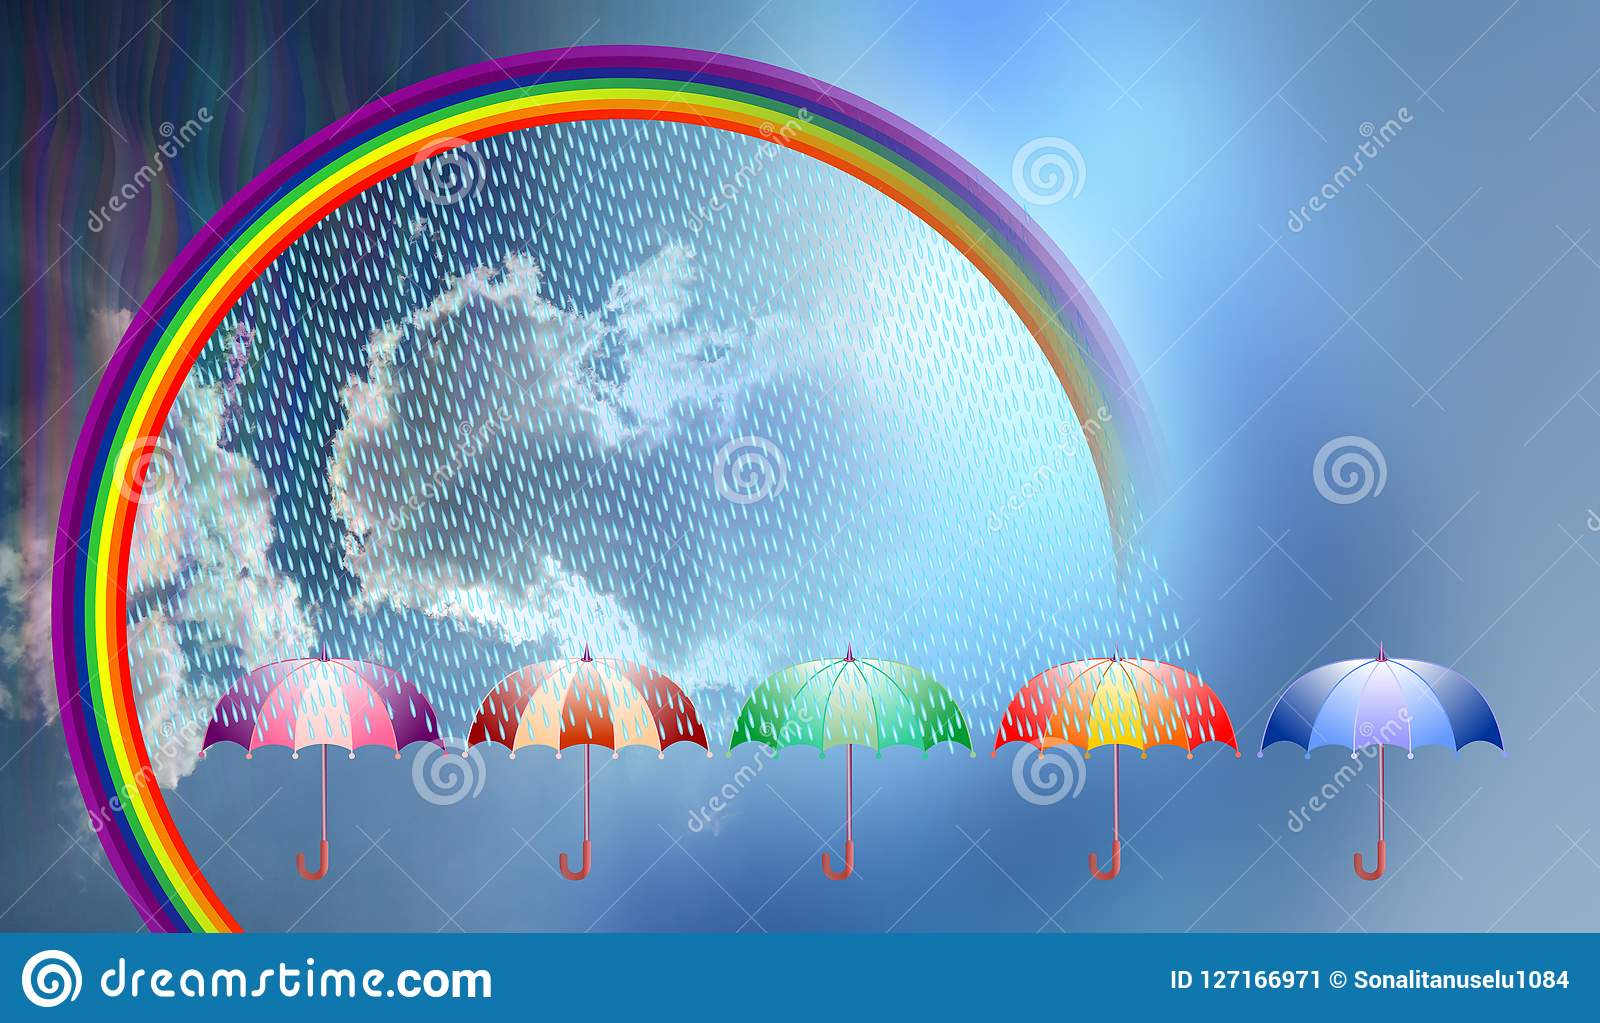 umbrella, rainbow, clouds